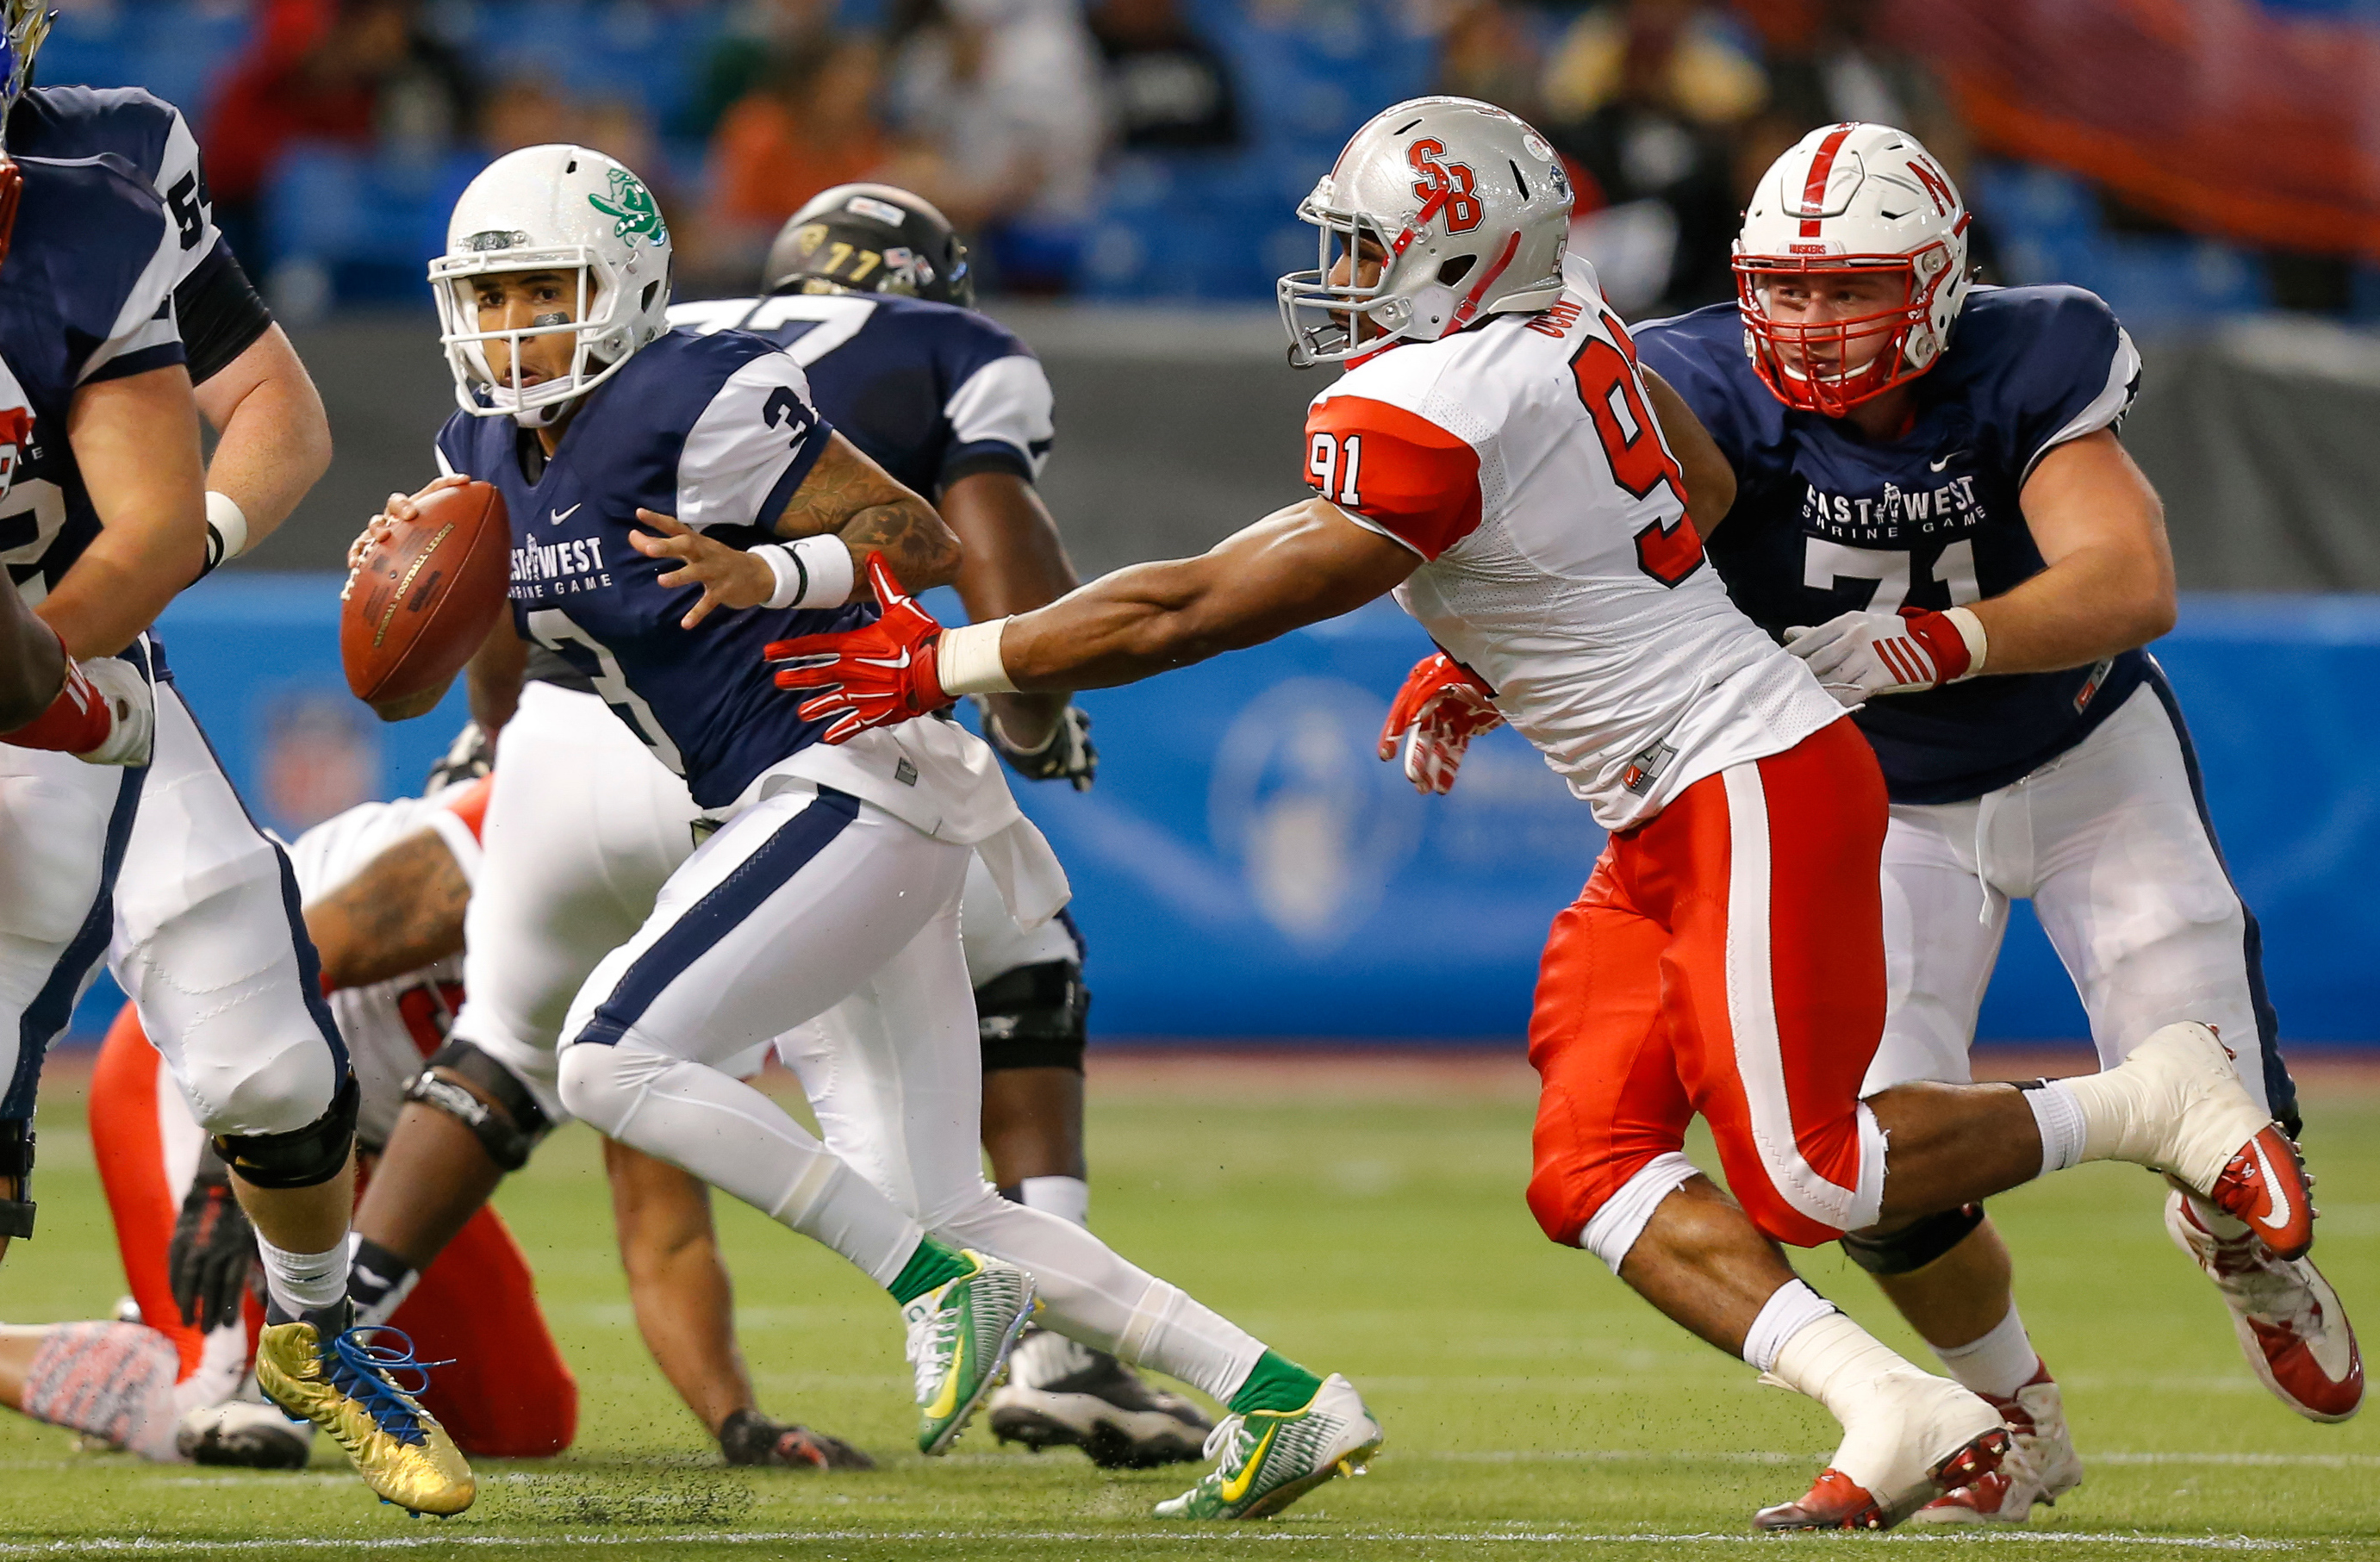 ST. PETERSBURG, FL - JANUARY 23:  Vernon Adams Jr. #3 from Oregon playing on the West Team avoids a tackle from Victor Ochi #91 from Stony Brook playing on the East Team during the first half of the East West Shrine Game at Tropicana Field on January 23, 2016 in St. Petersburg, Florida. (Photo by Mike Carlson/Getty Images)